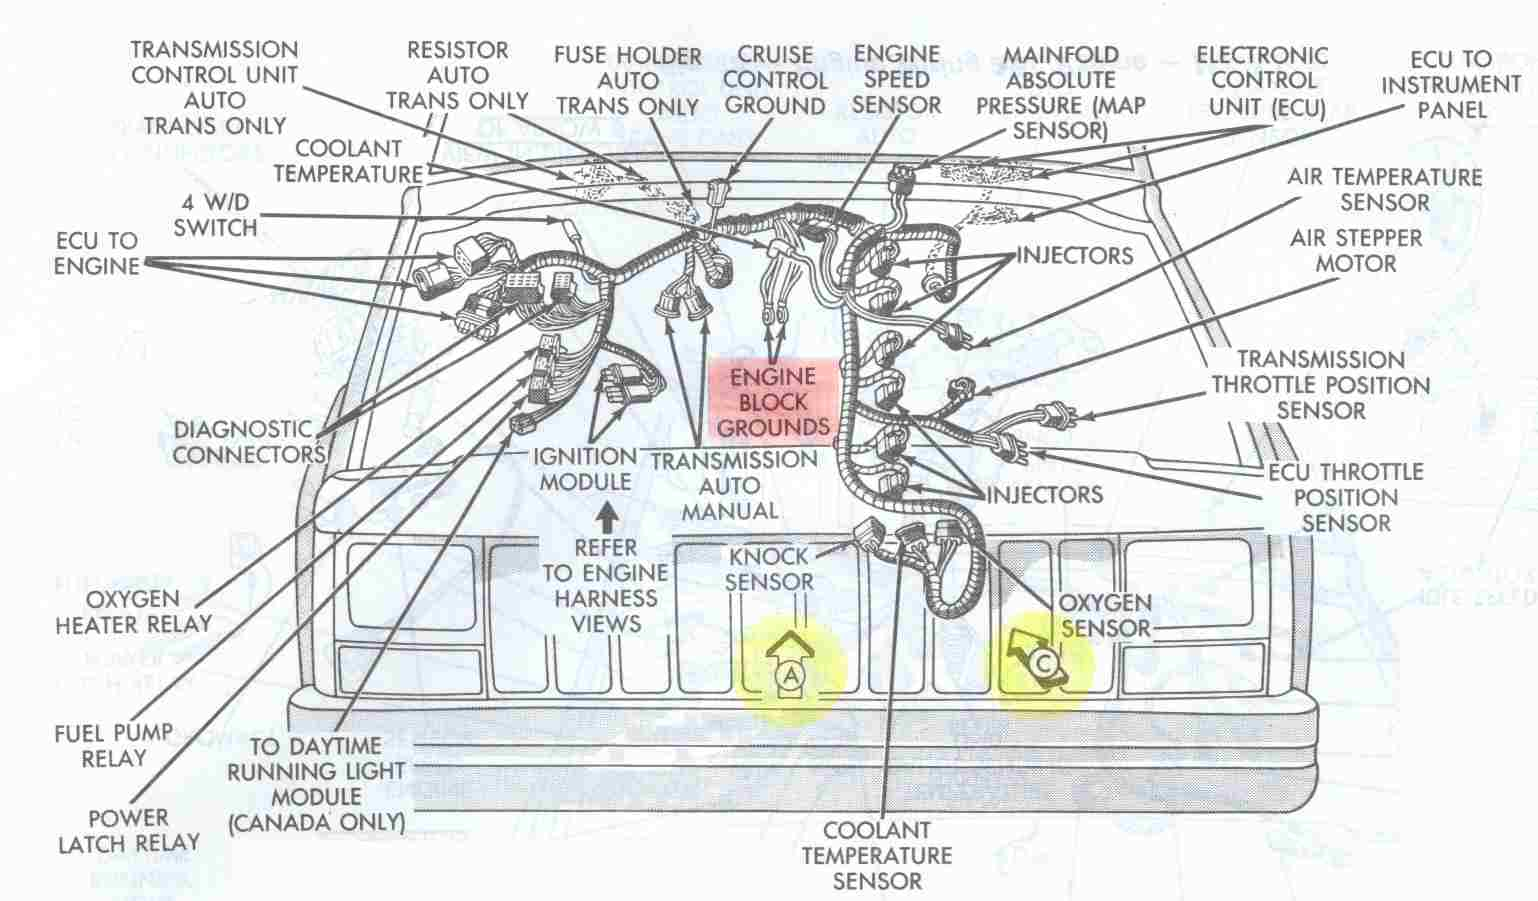 Electrical_Engine_Ground_Points_Overview jeep cherokee electrical diagnosing erratic behavior of engine 1994 jeep cherokee engine wiring harness at crackthecode.co